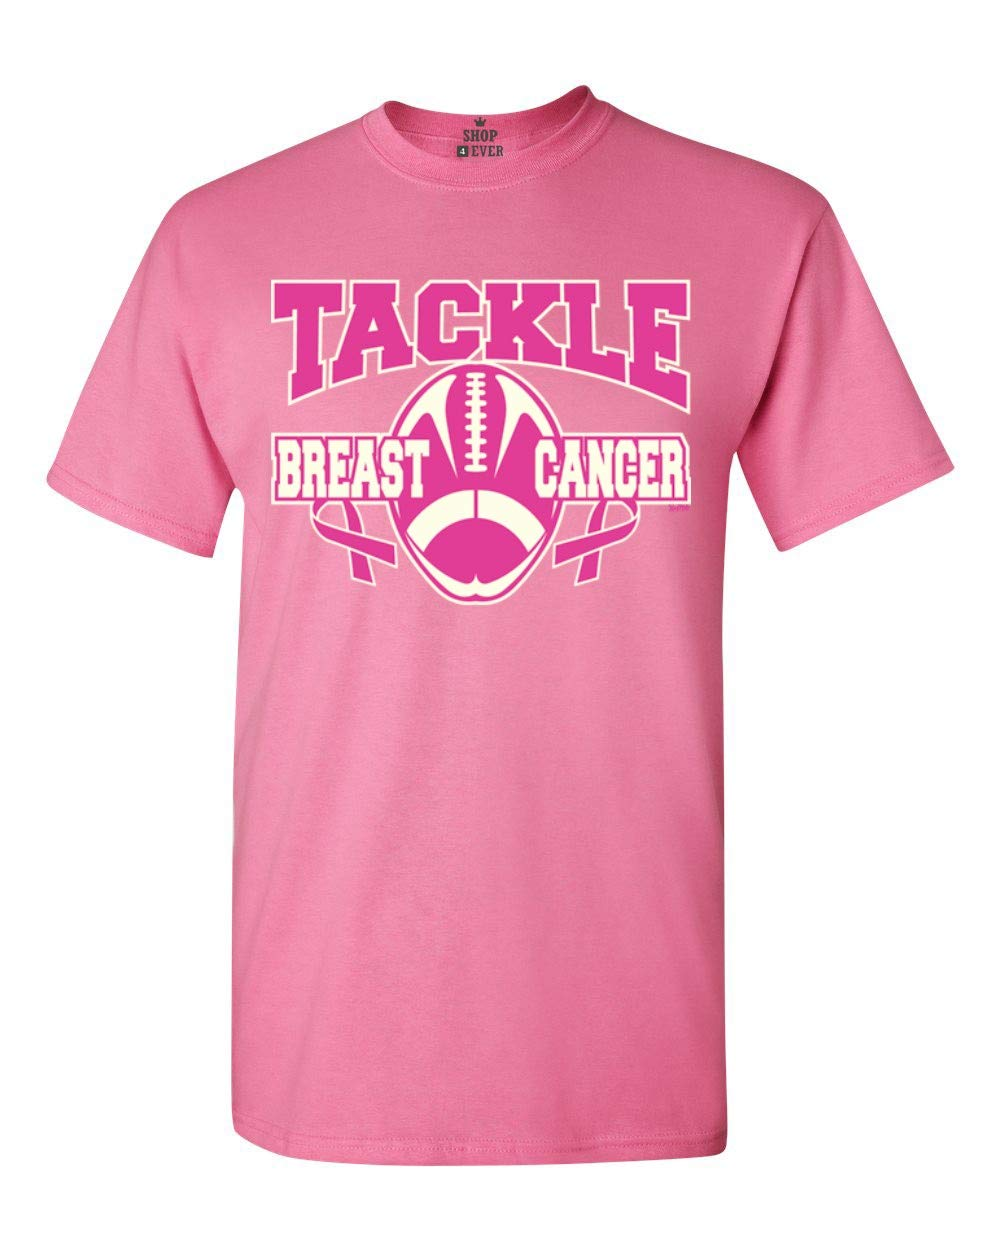 Tackle Breast Cancer T Shirt Breast Cancer Awareness Shirts